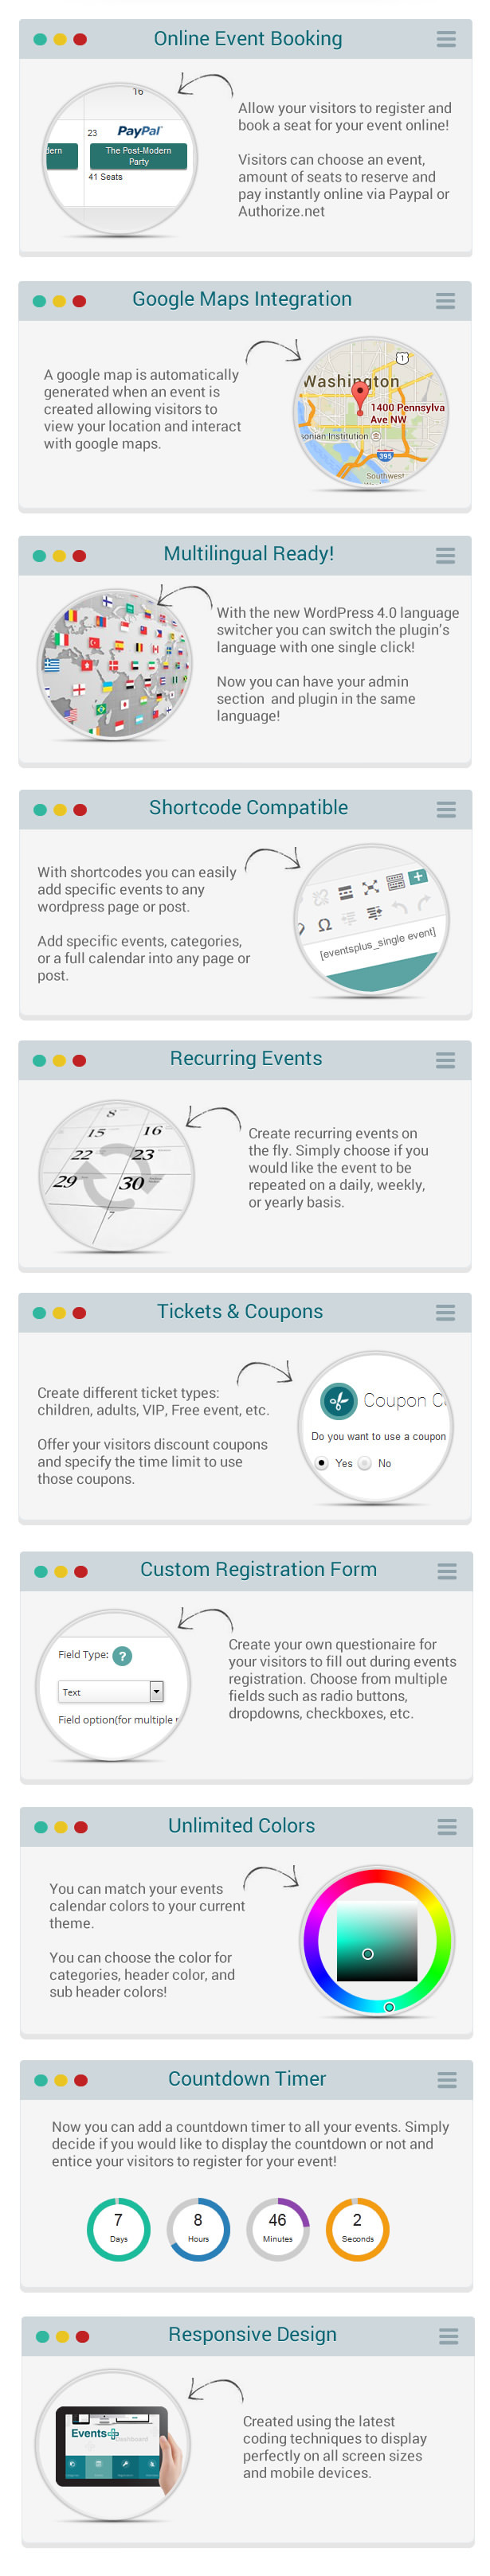 events16 - Events Calendar Registration & Booking